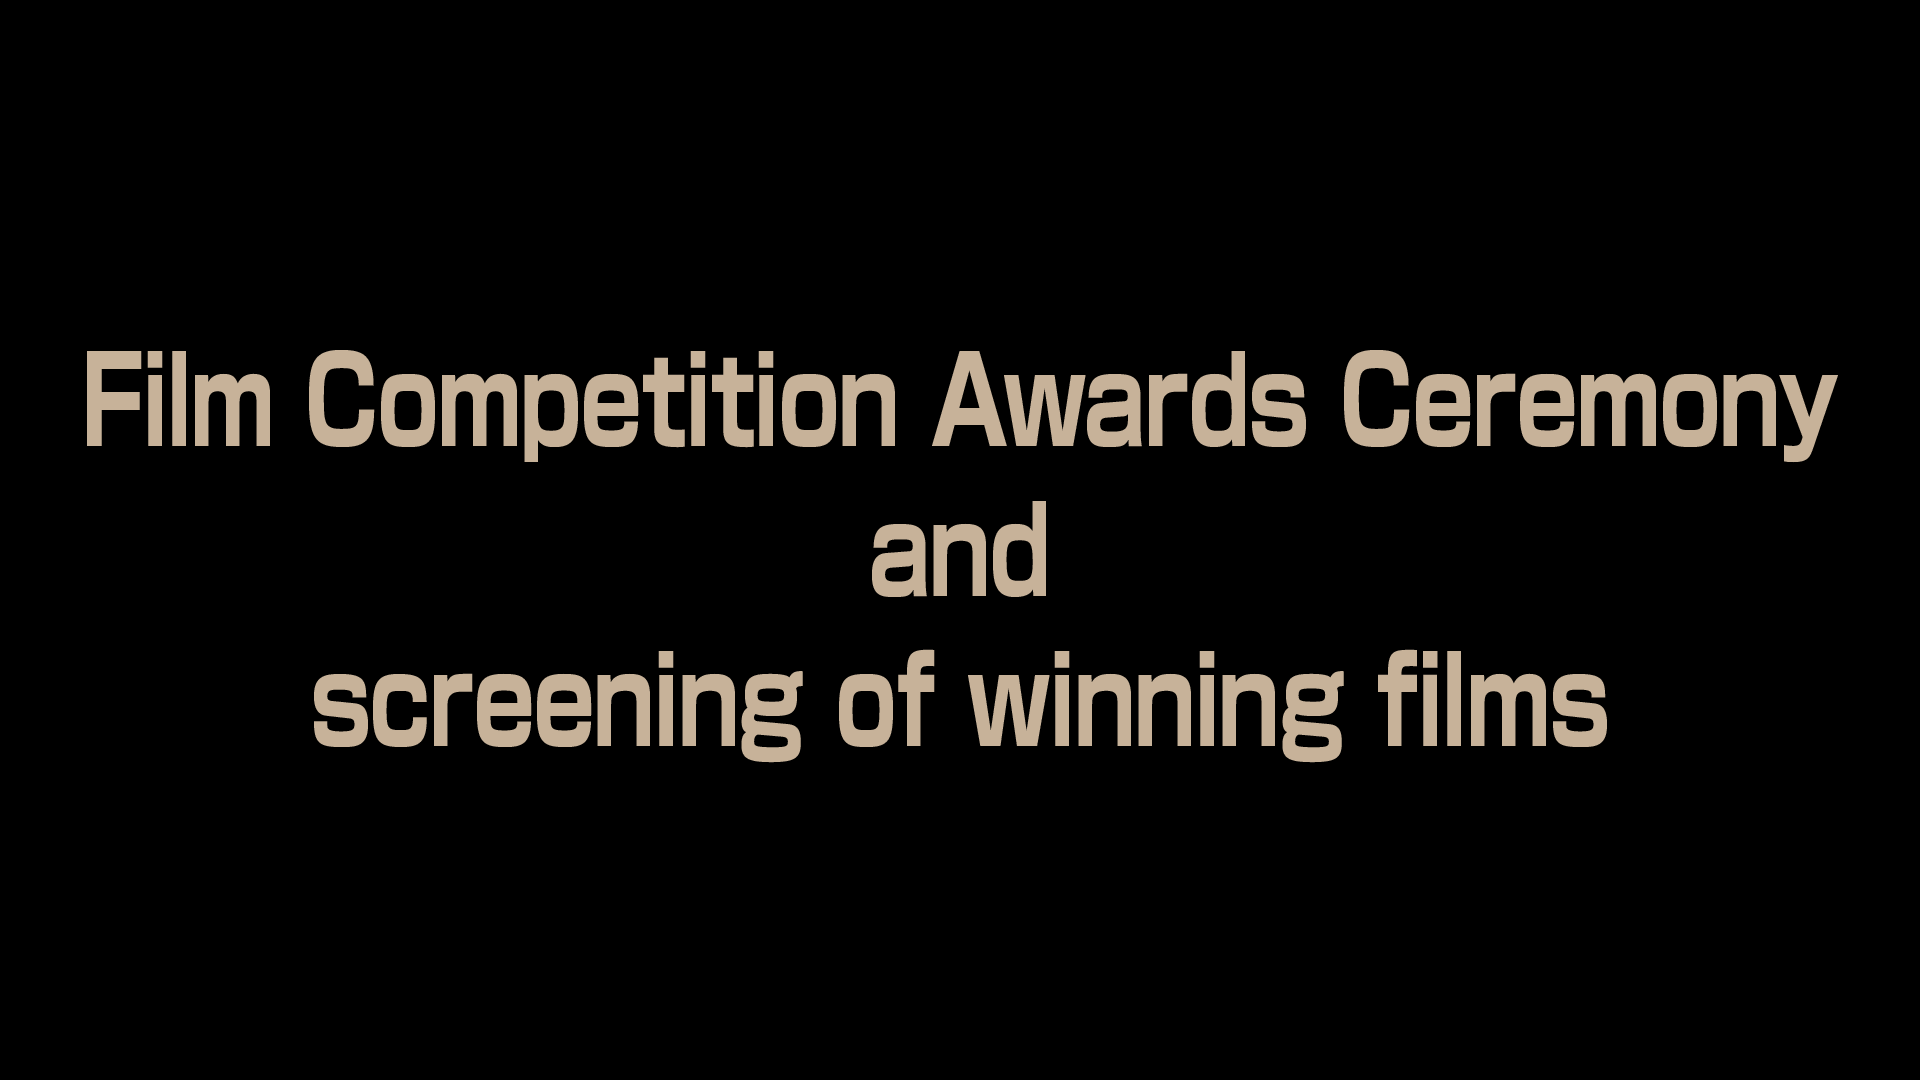 Film Competition Awards Ceremony and screening of winning films